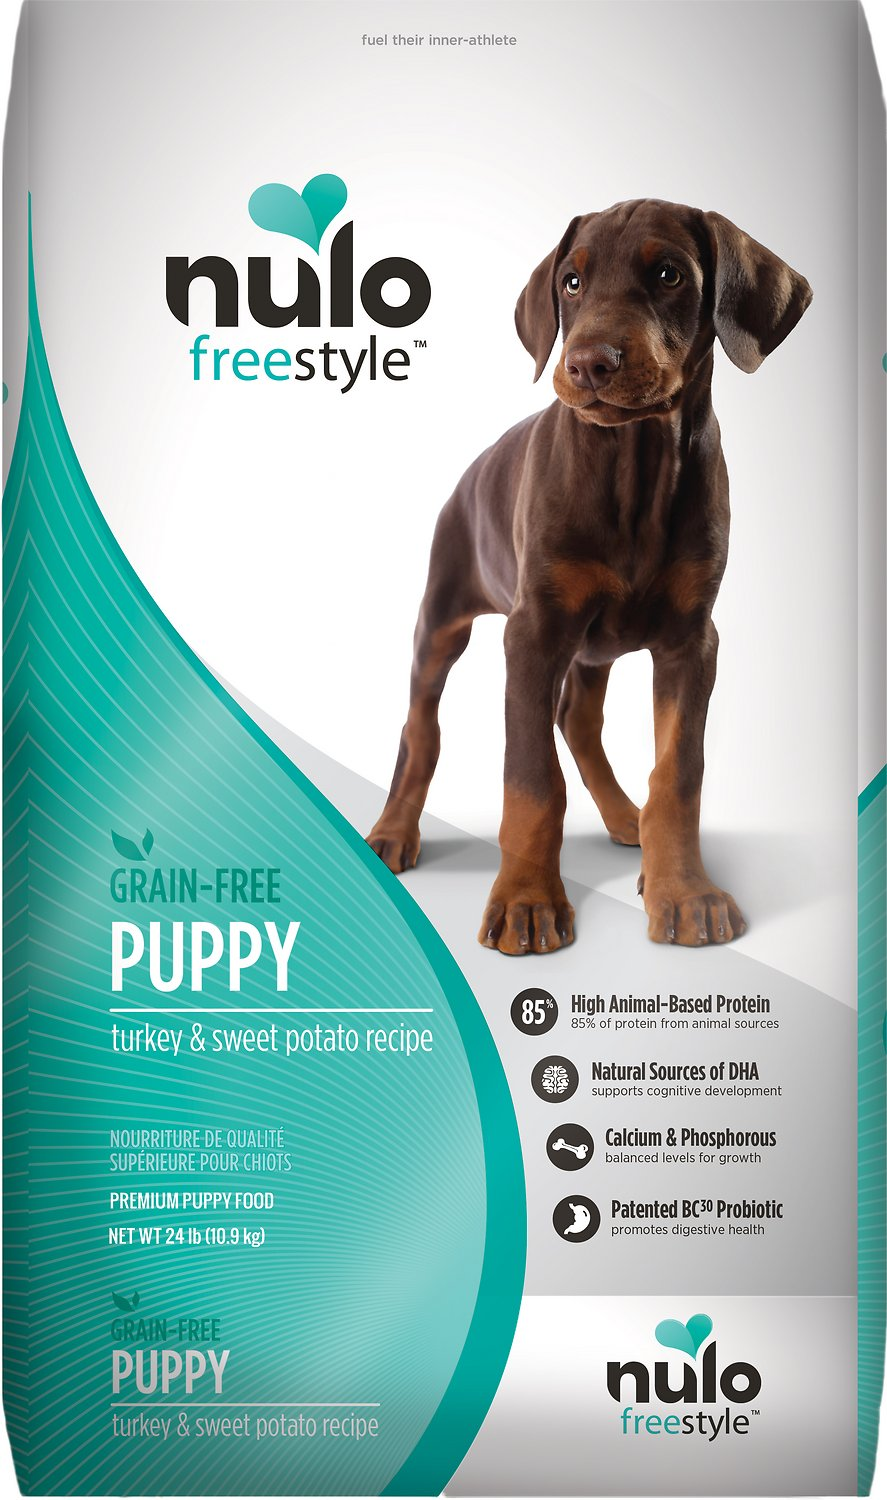 Nulo Dog FreeStyle Grain-Free Turkey & Sweet Potato Recipe Puppy Dry Dog Food Image